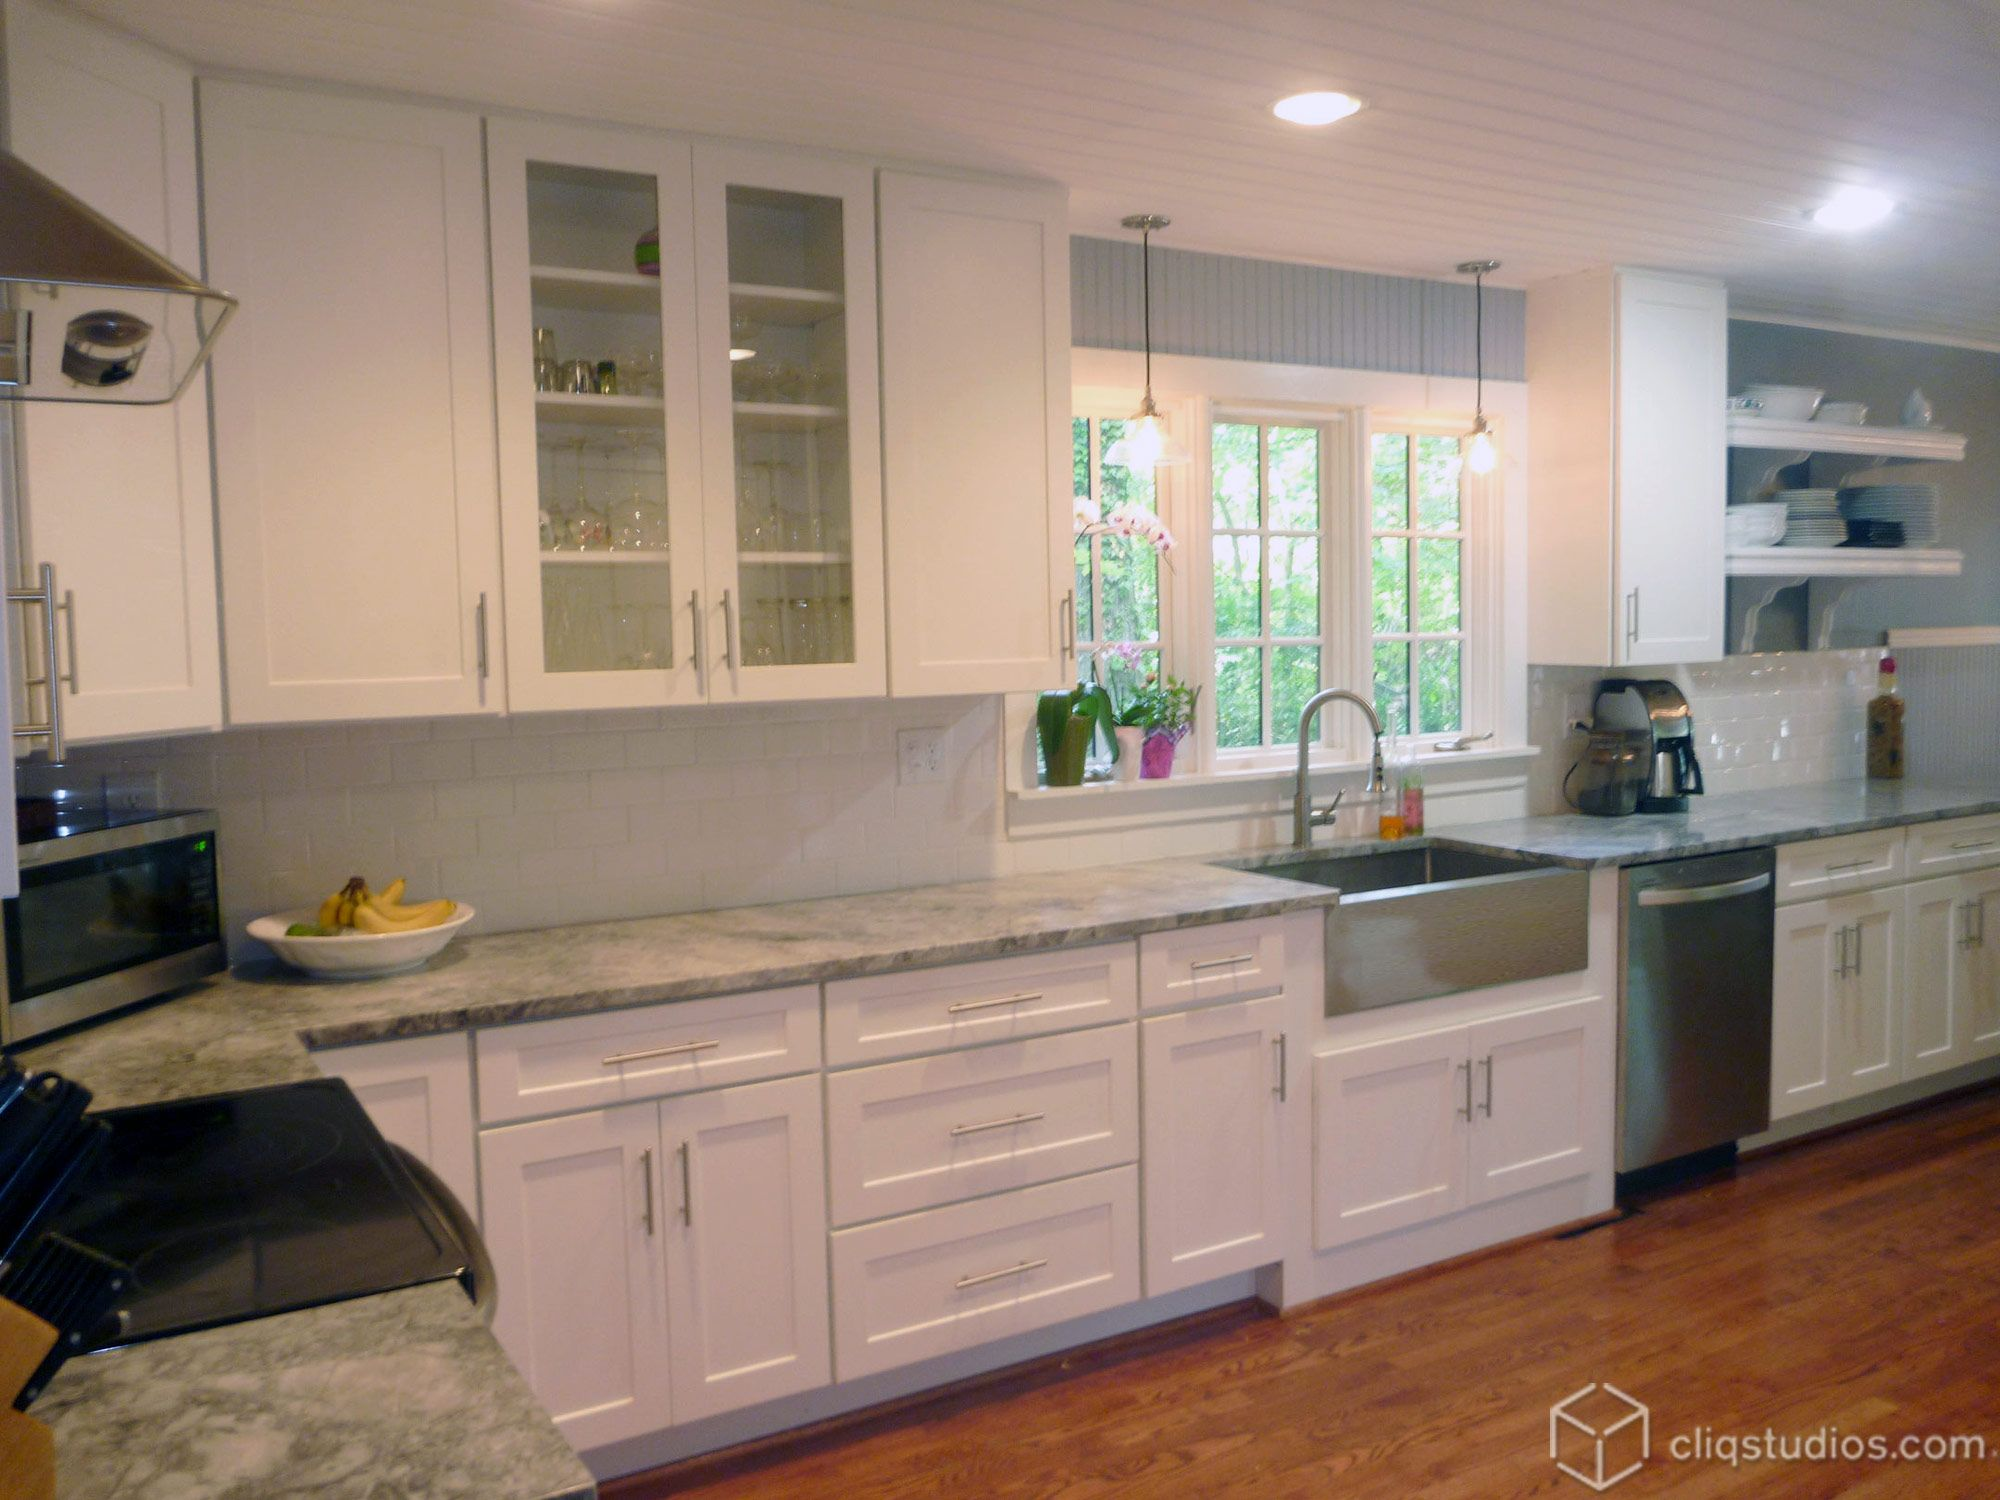 New White Mission Style Dayton Kitchen Cabinets From Cliqstudios